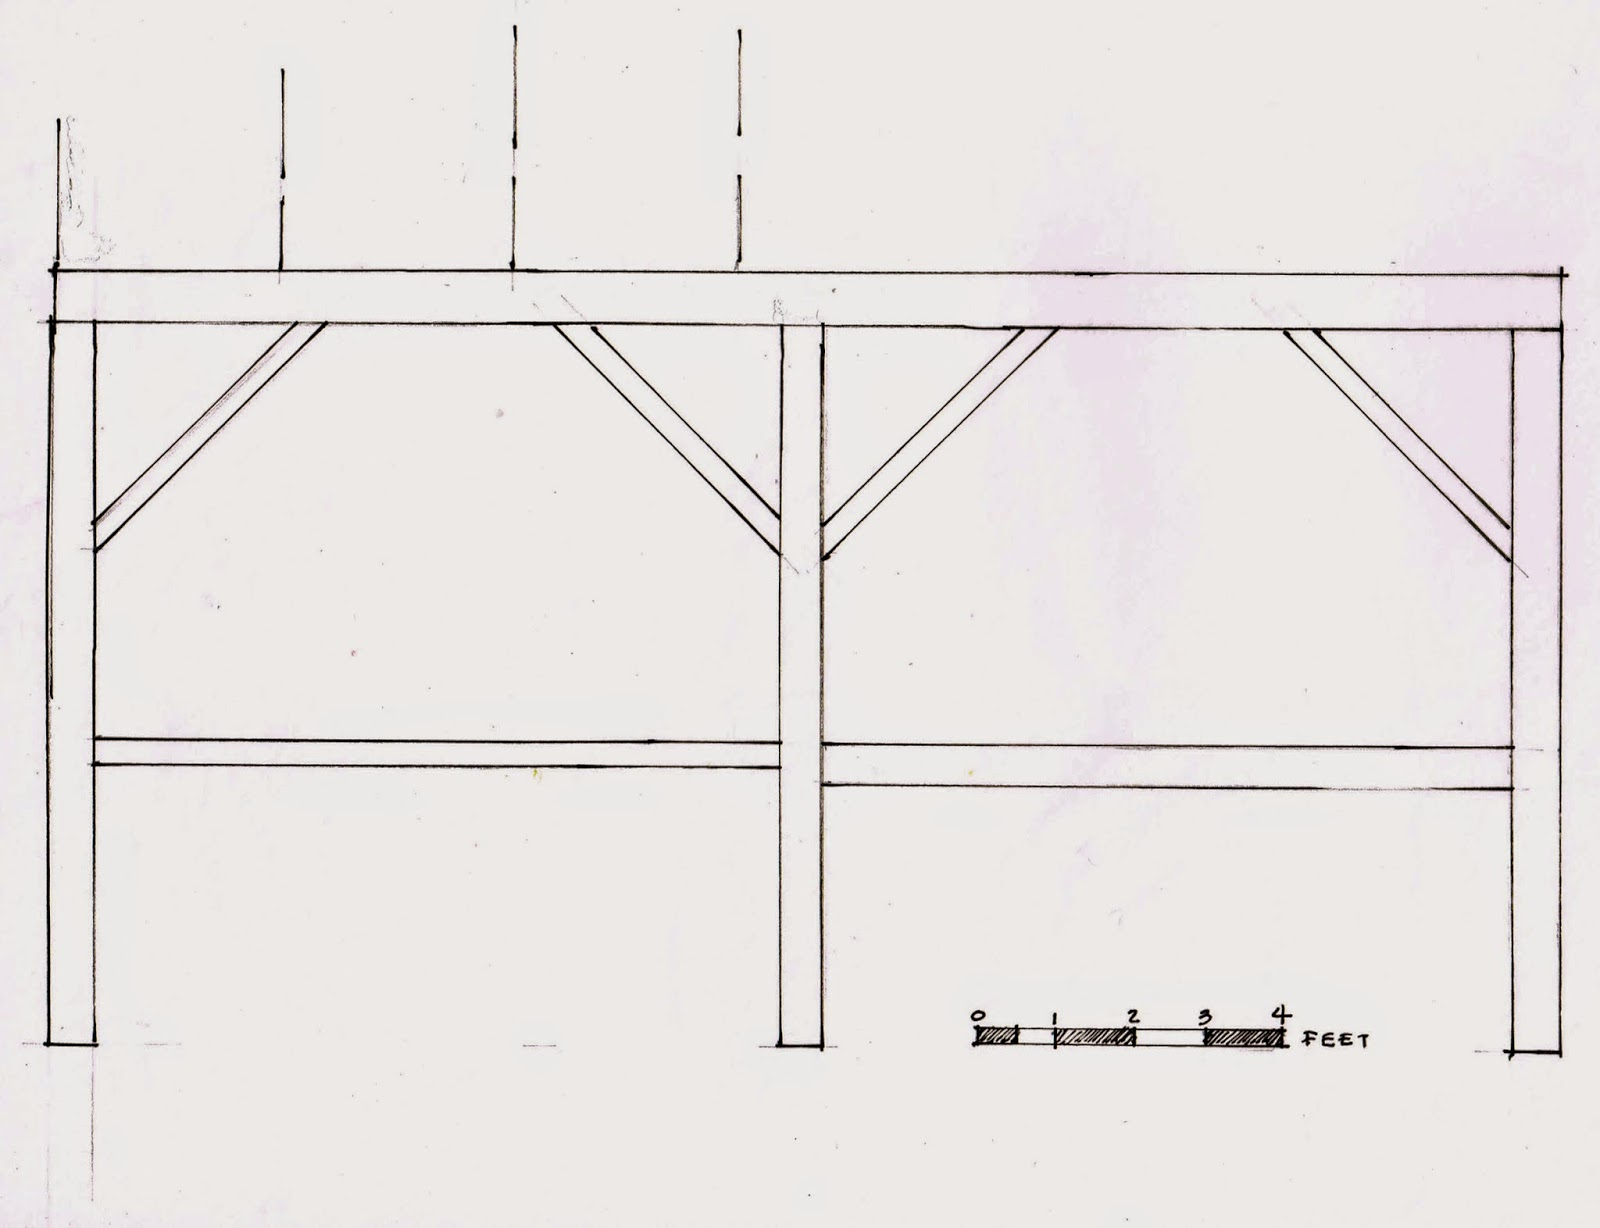 Jane Griswold Radocchia: Timber frame from a carriage house